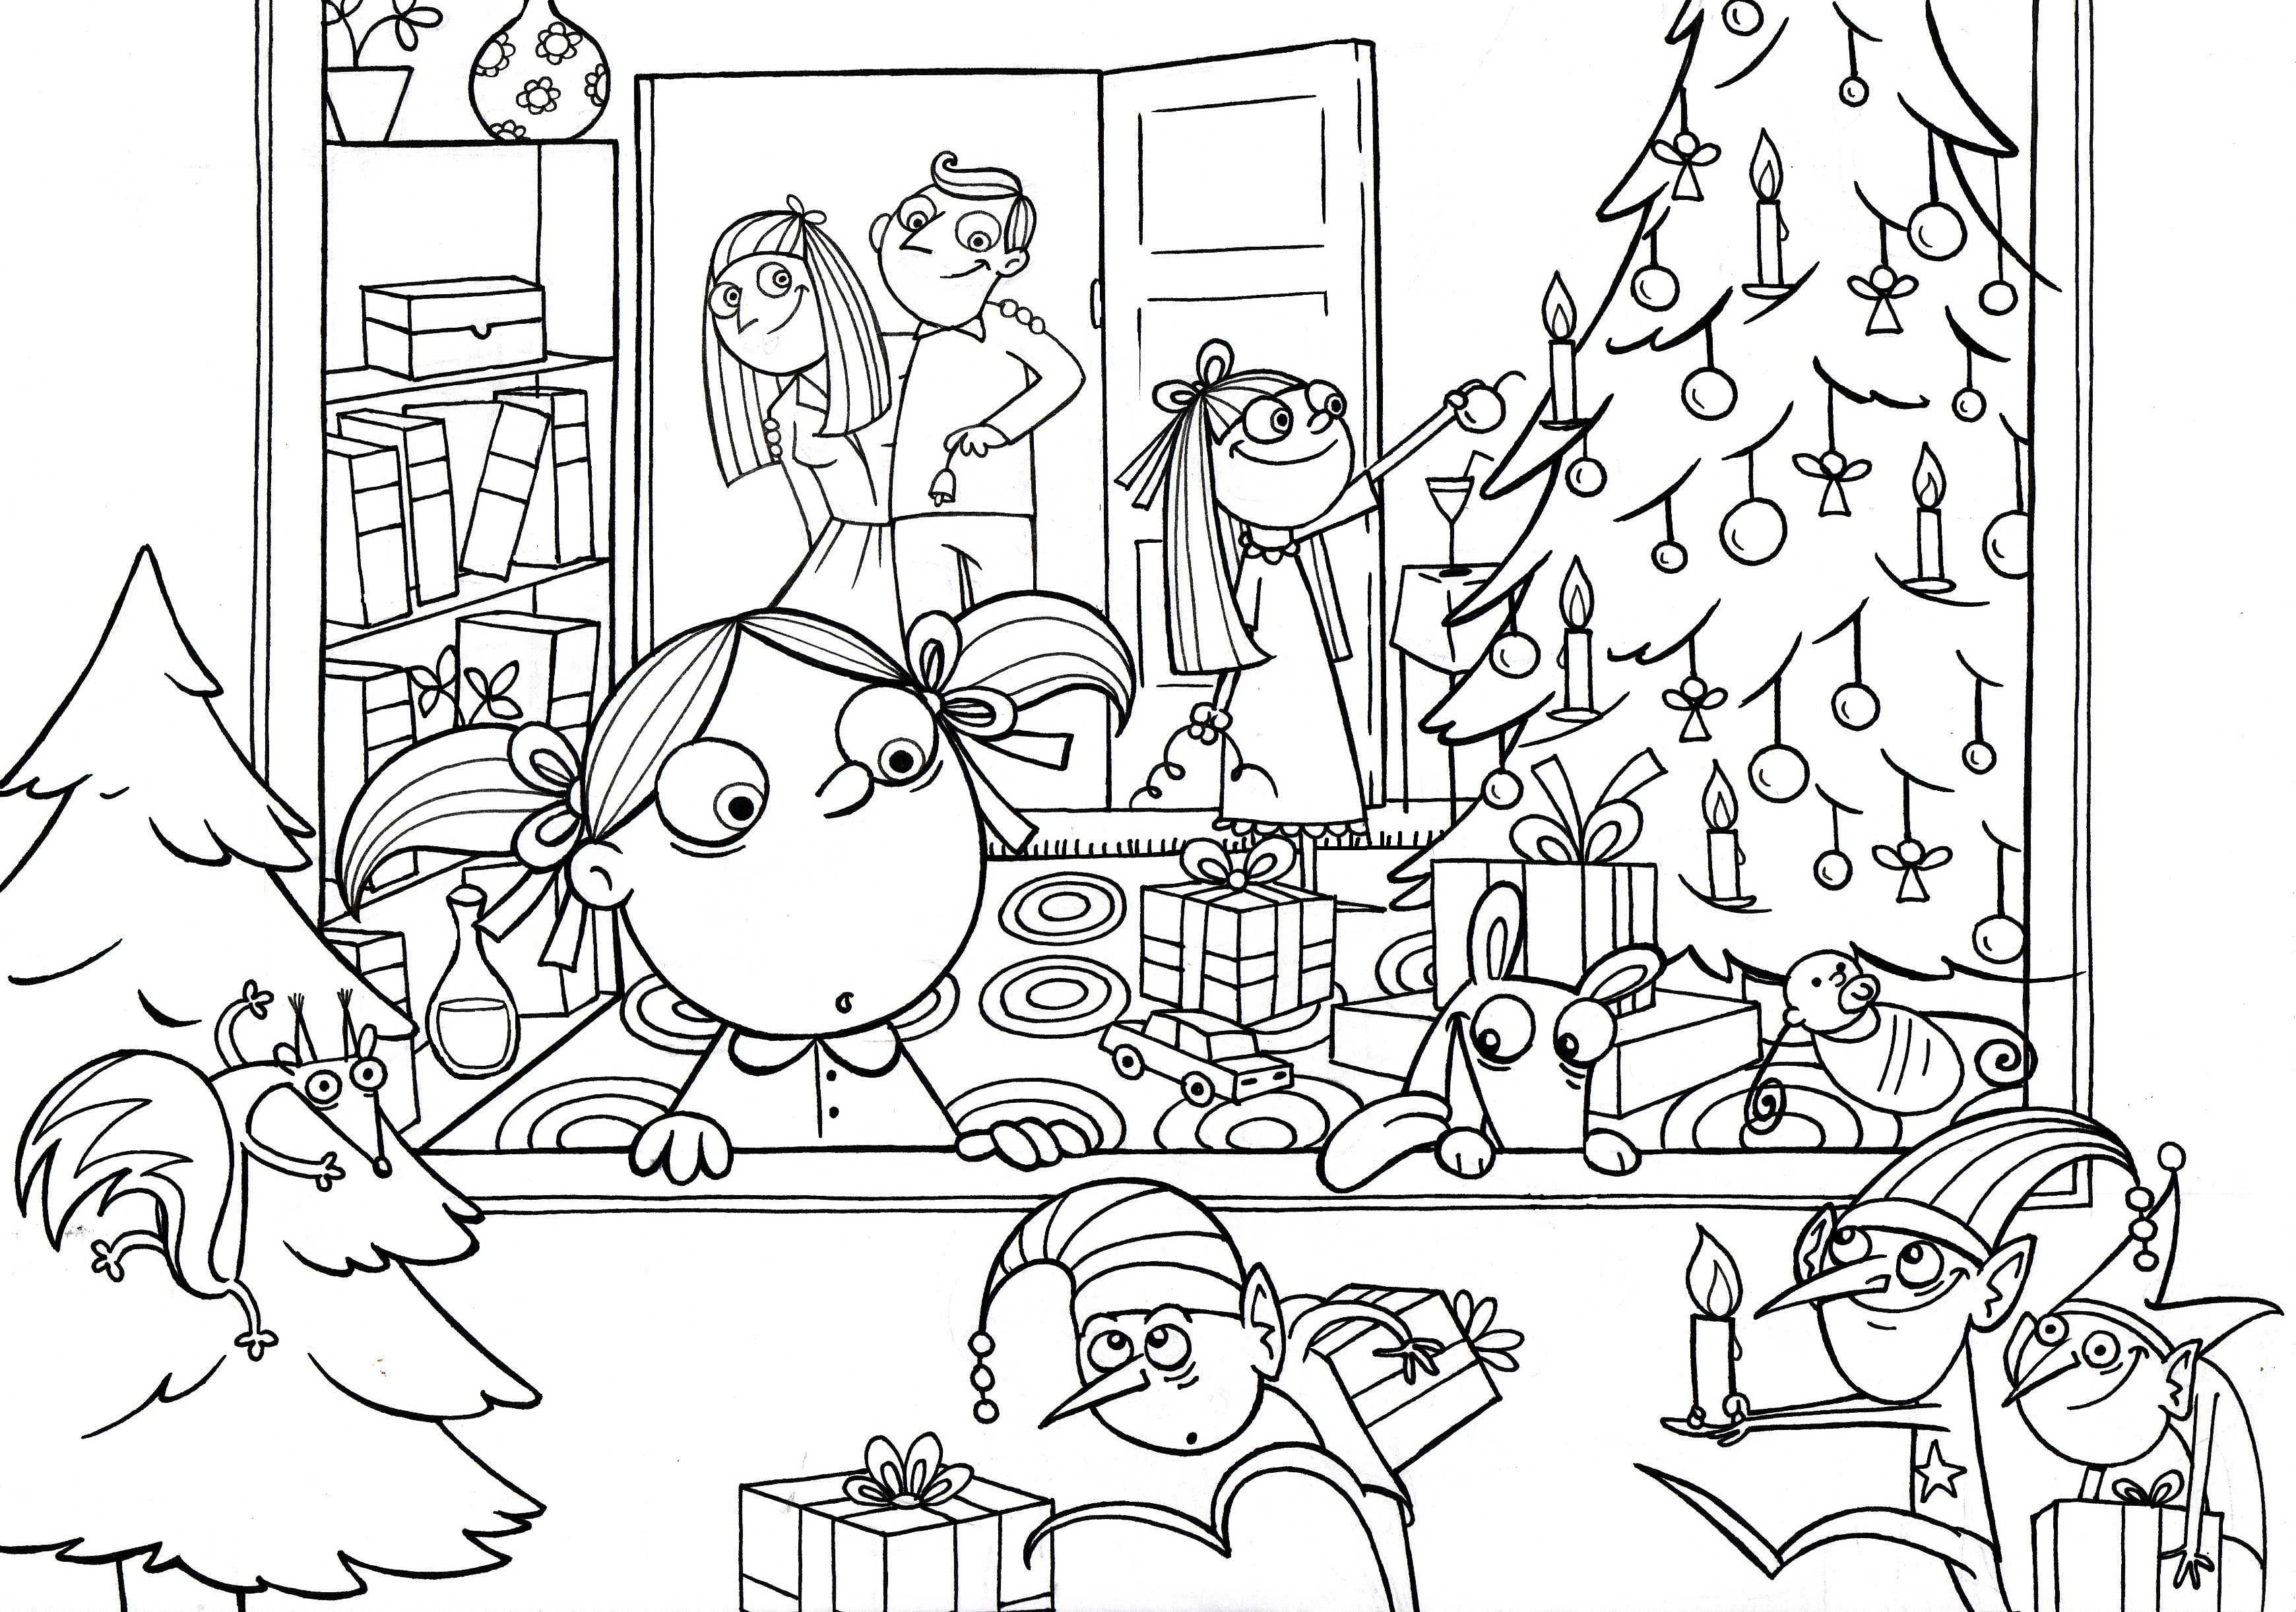 Detailed Christmas Coloring Pages For Adults With Crayola Tree Best Of